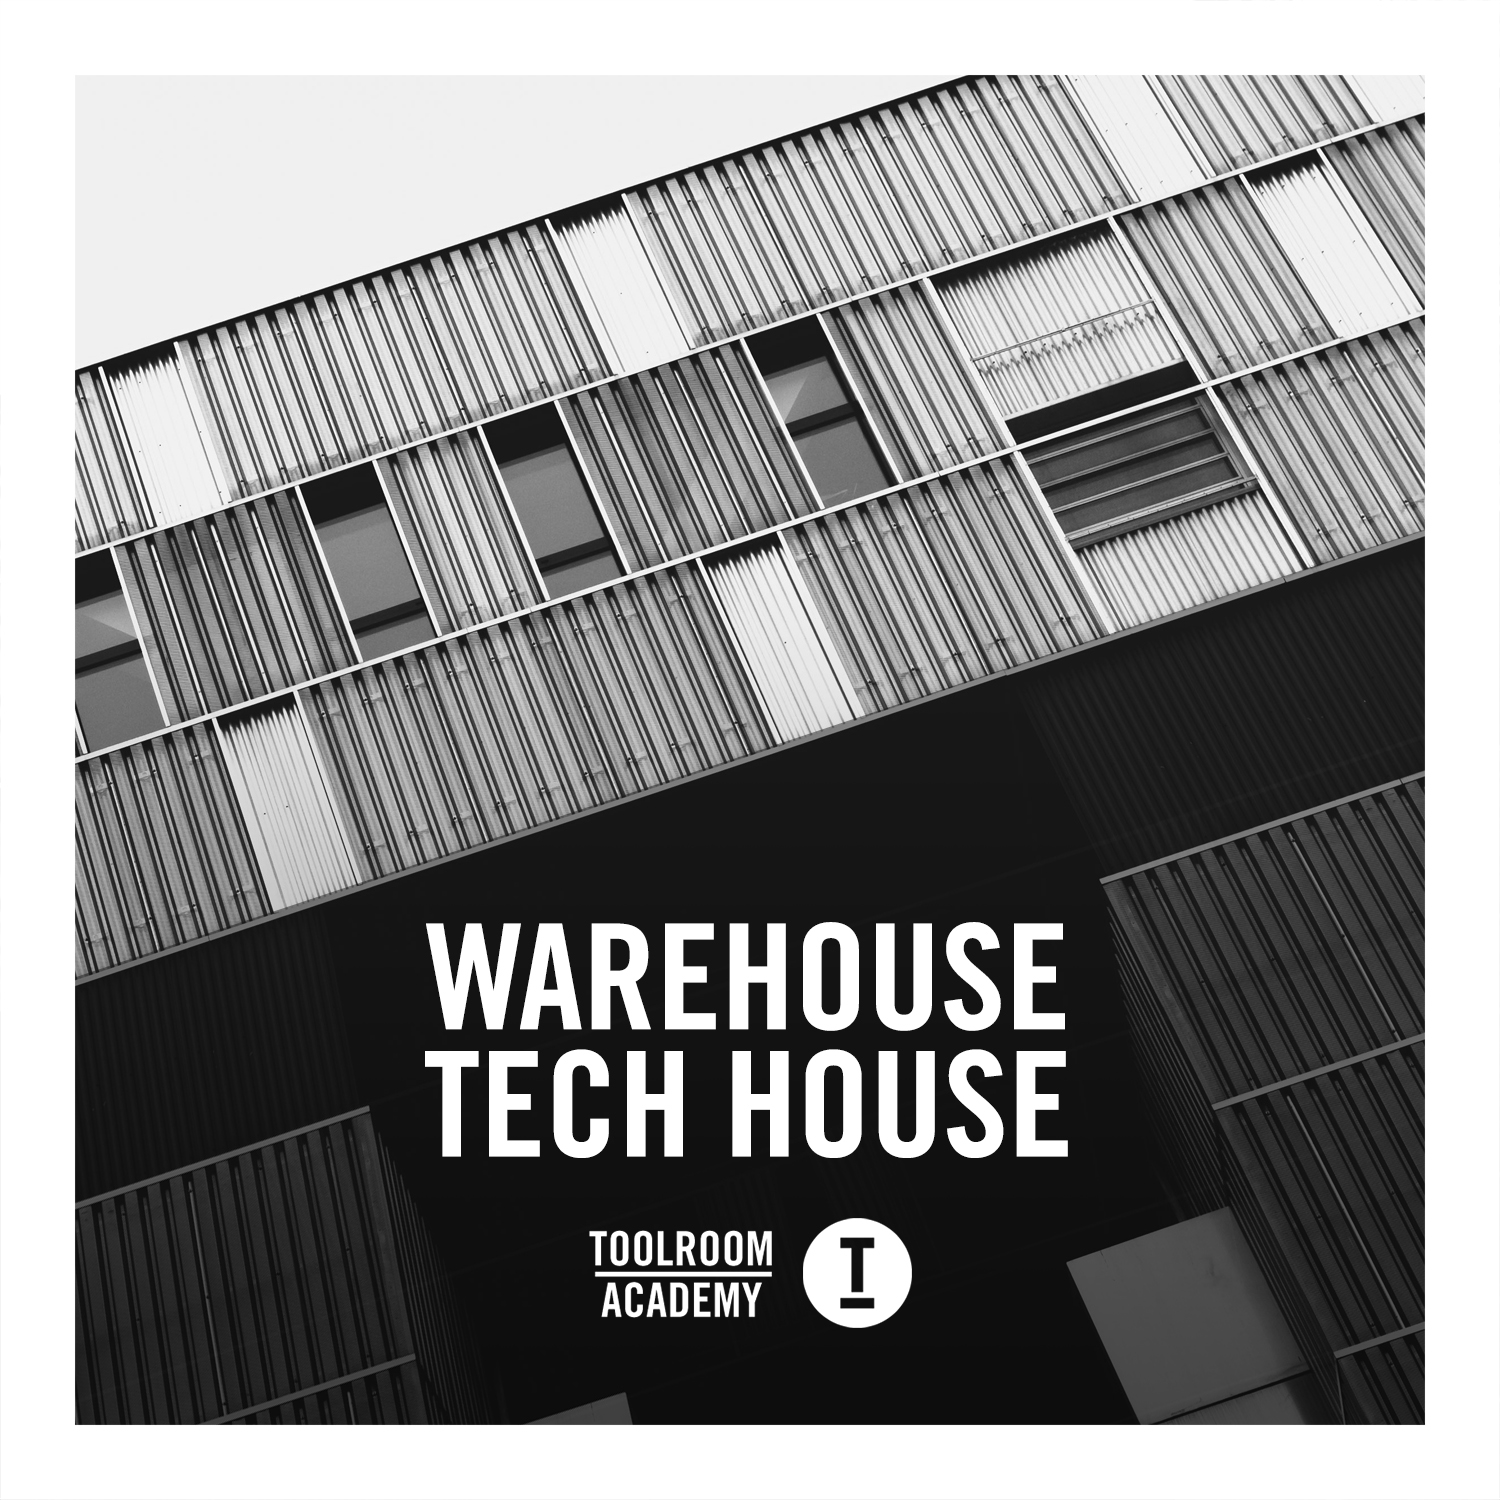 Toolroom Academy – Warehouse Tech House